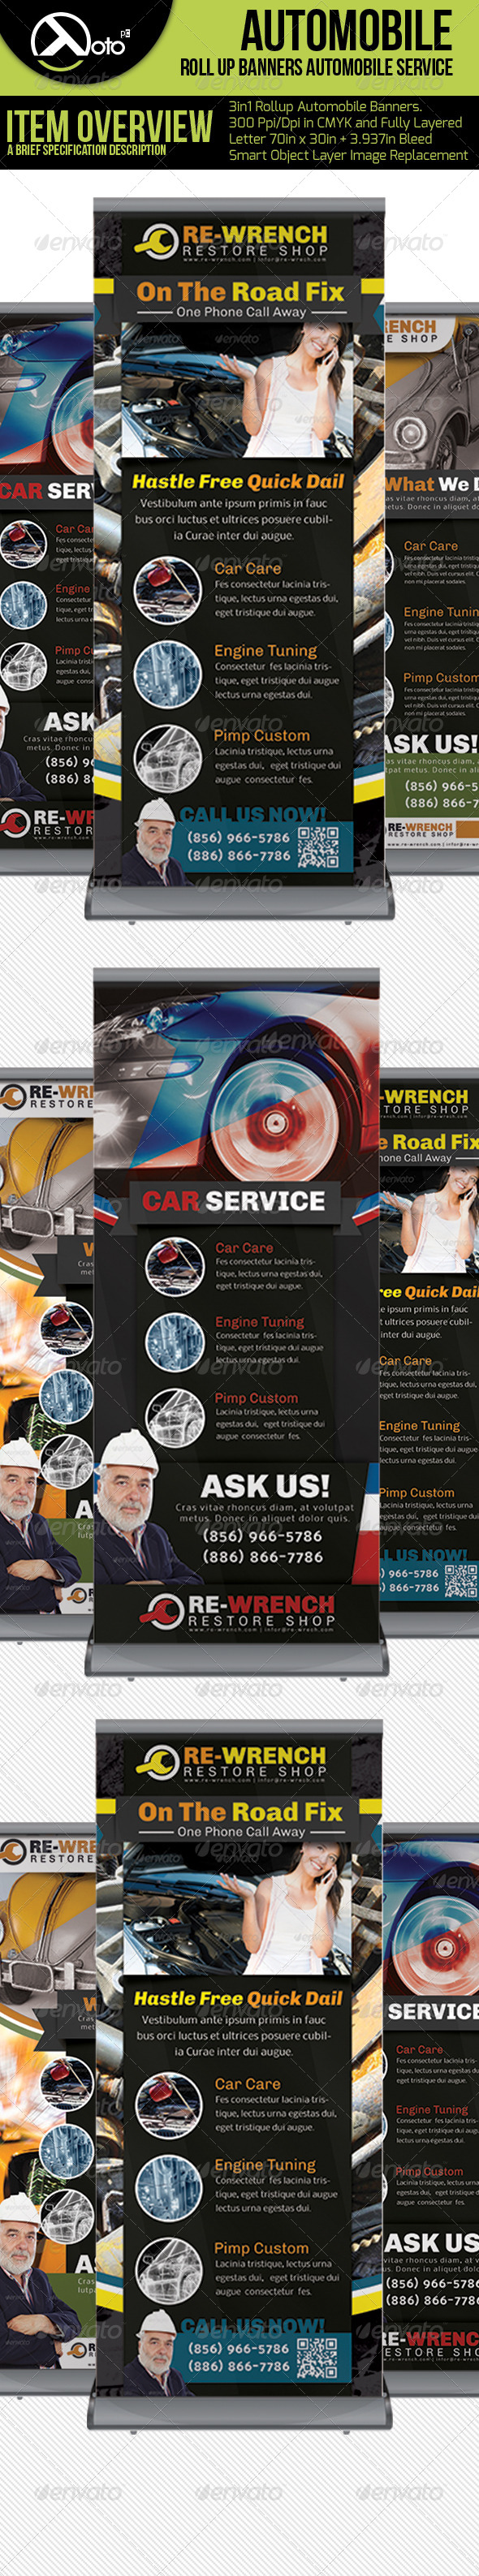 3 in 1 Auto-Mobile Roll-up Banners - Signage Print Templates